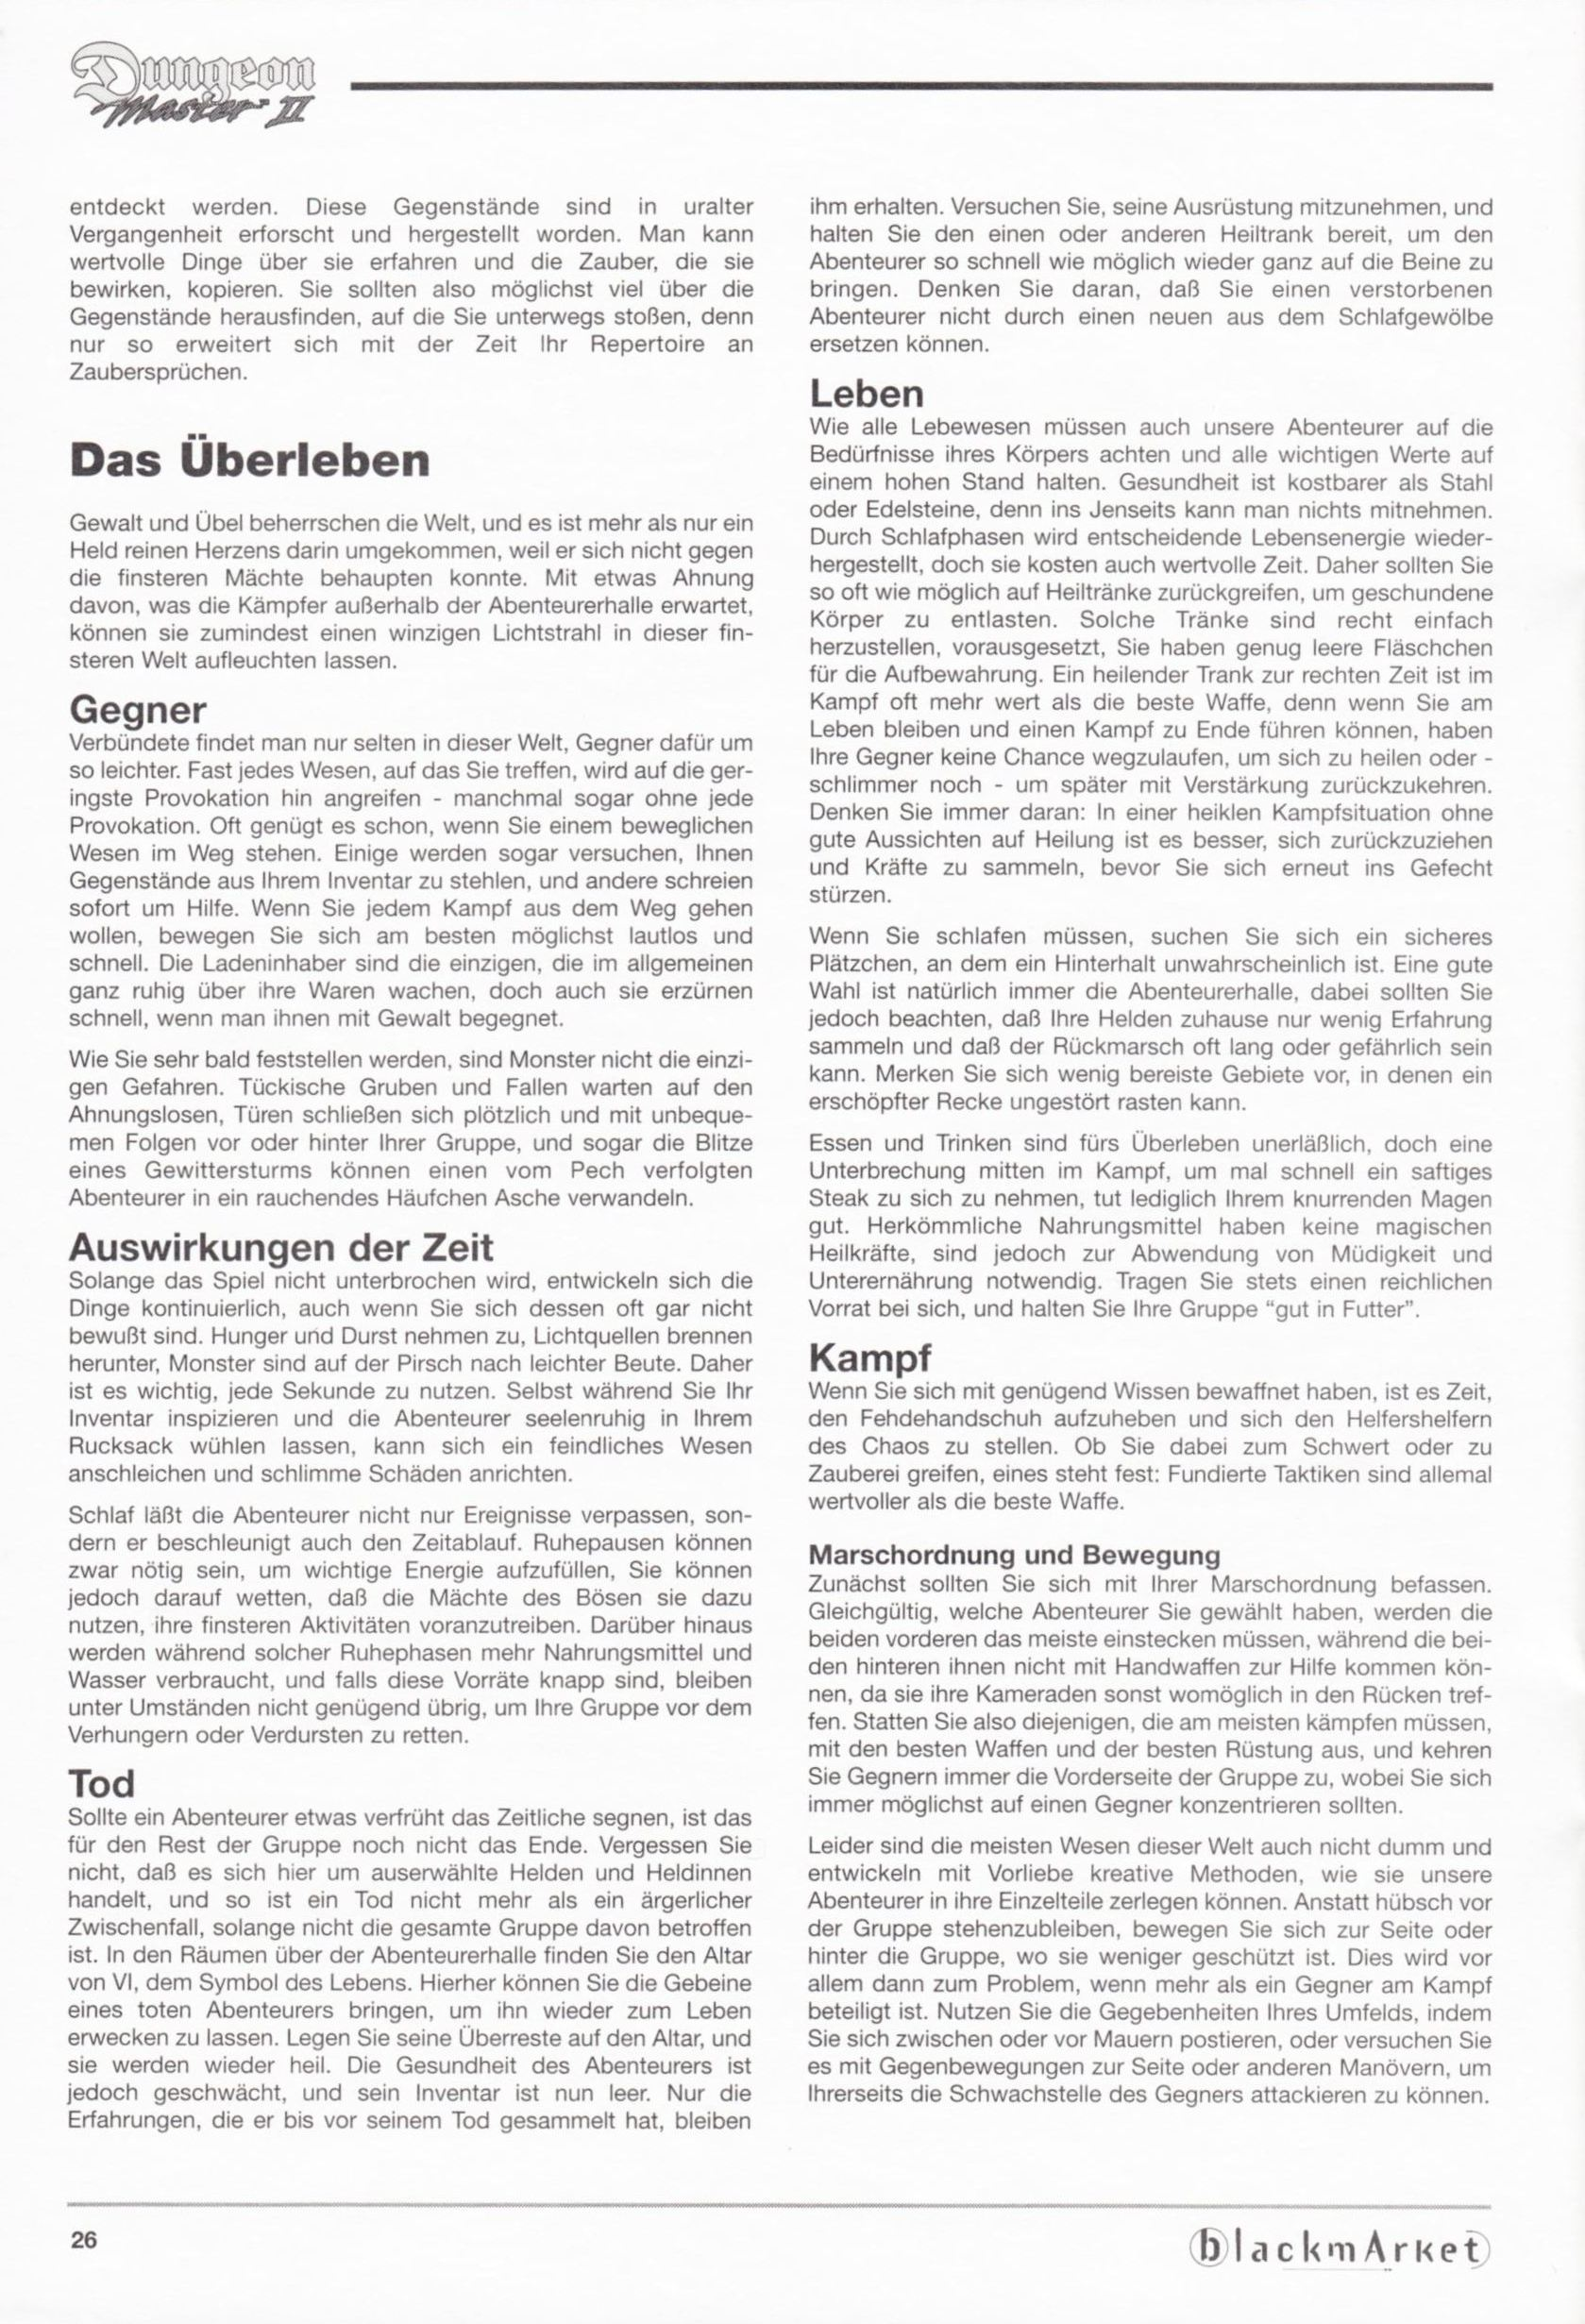 Game - Dungeon Master II - DE - PC - Blackmarket With Manual - Manual - Page 028 - Scan